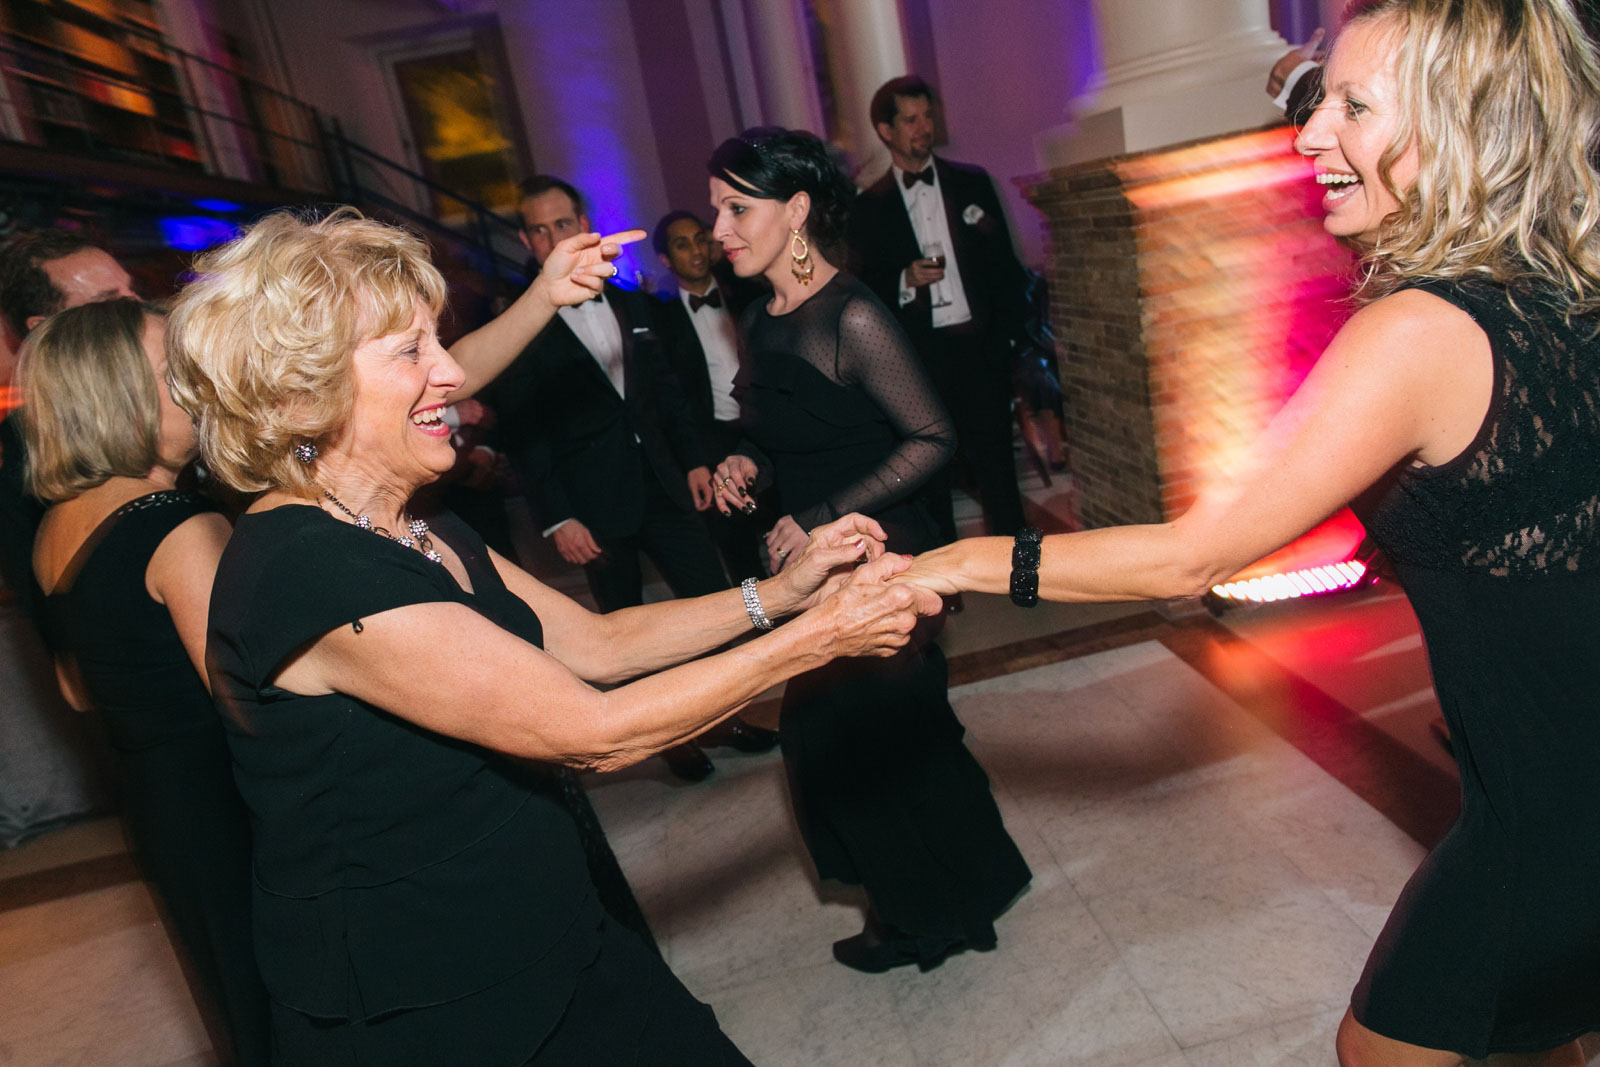 Wedding guests on the dance floor during wedding reception at the Boston Public Library